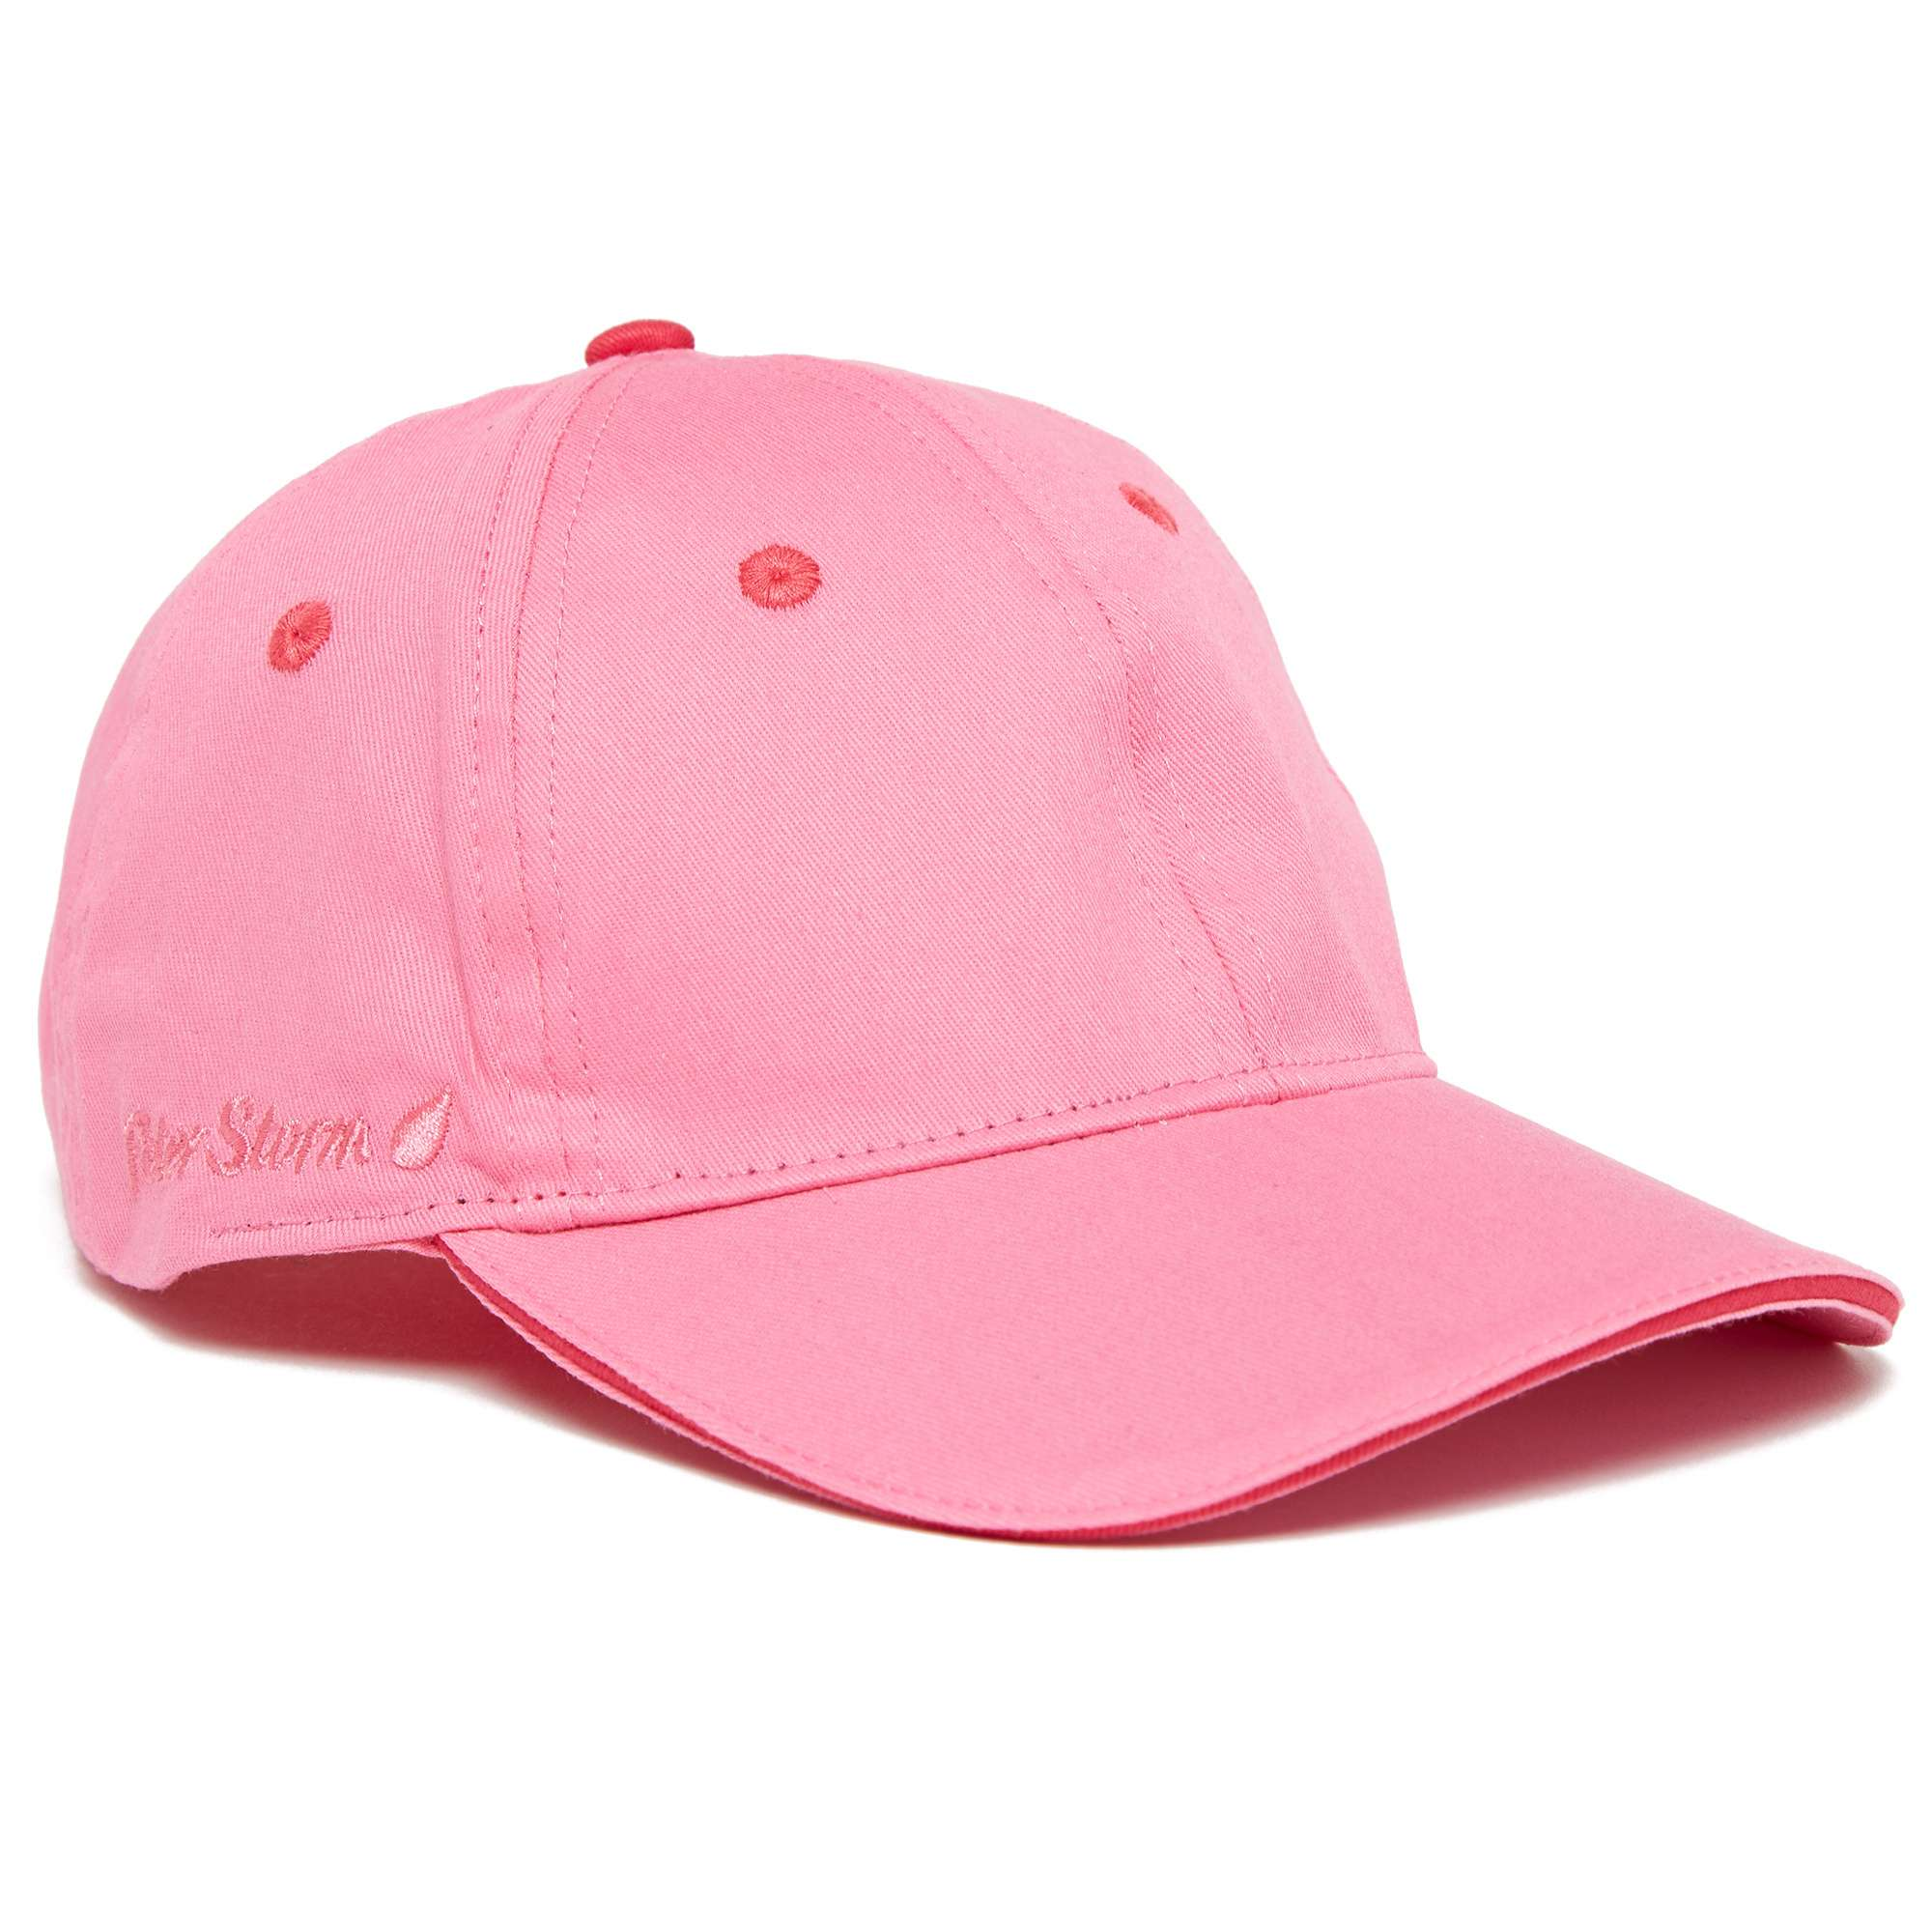 PETER STORM Girls' Baseball Cap